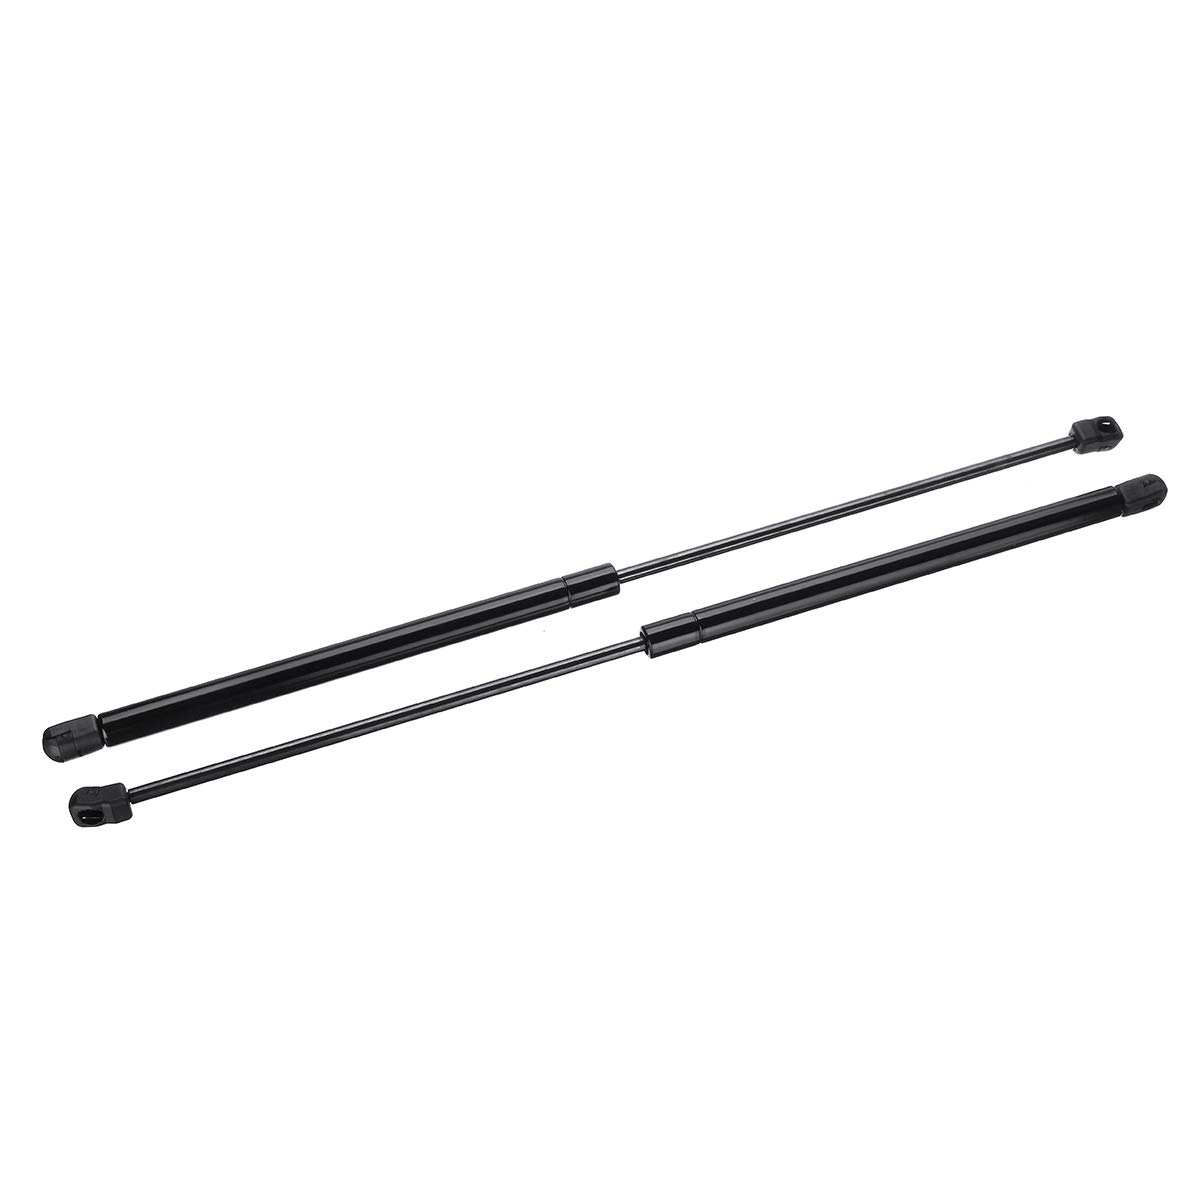 Oneuda 2pcs Car Rear Gas Tailgate Boot Support Struts For Mazda 6 Hatchback 2002-2008